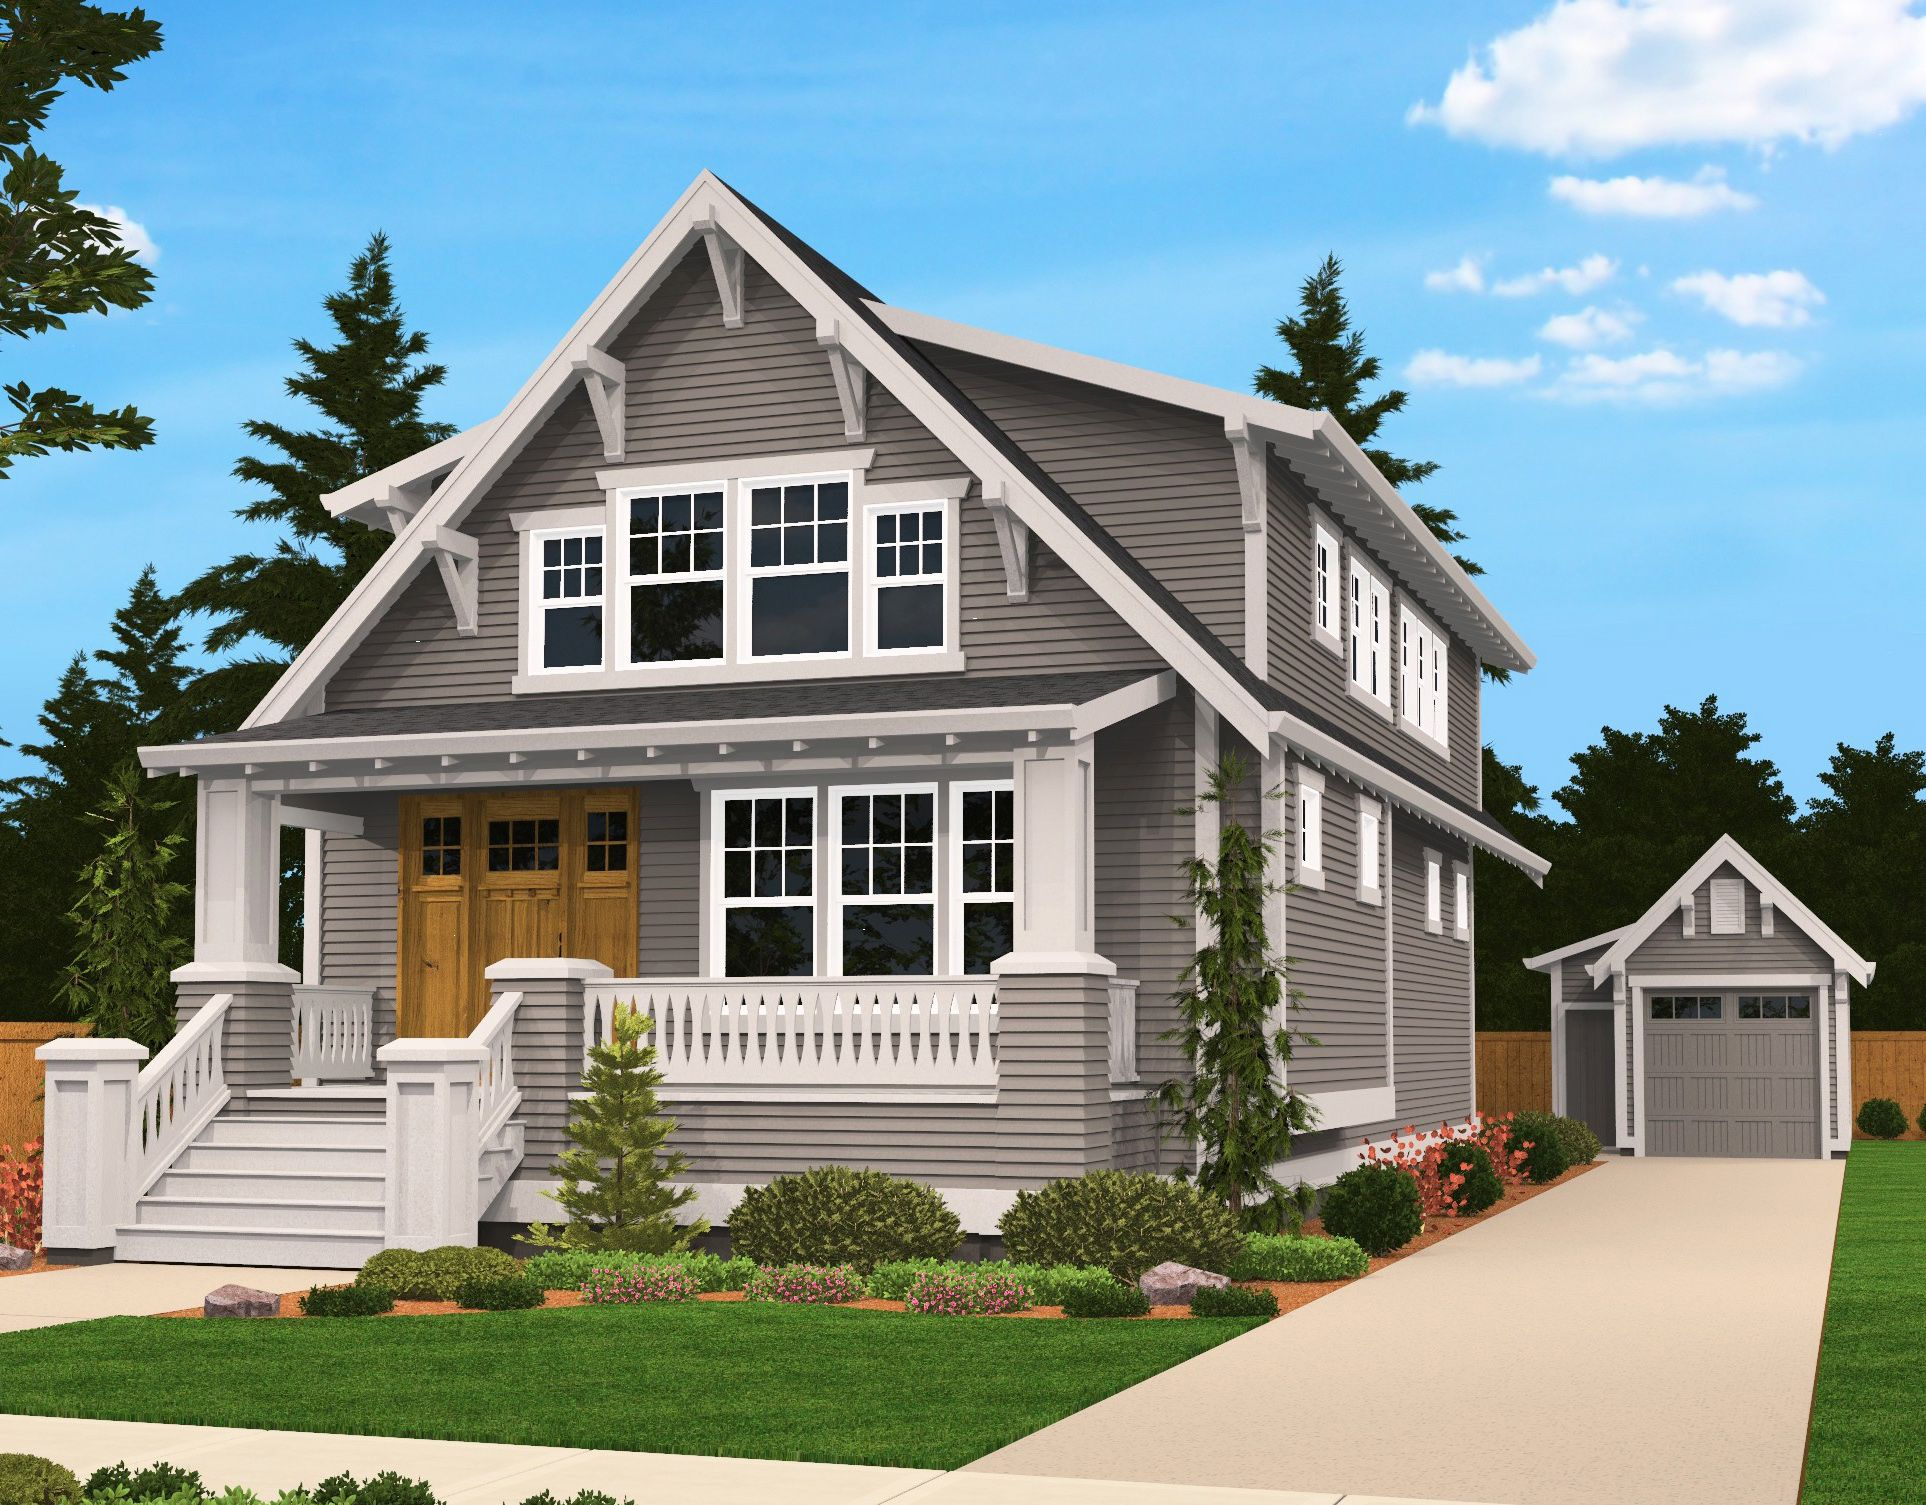 Plan 85058ms handsome bungalow house plan bungalow Small bungalow home plans